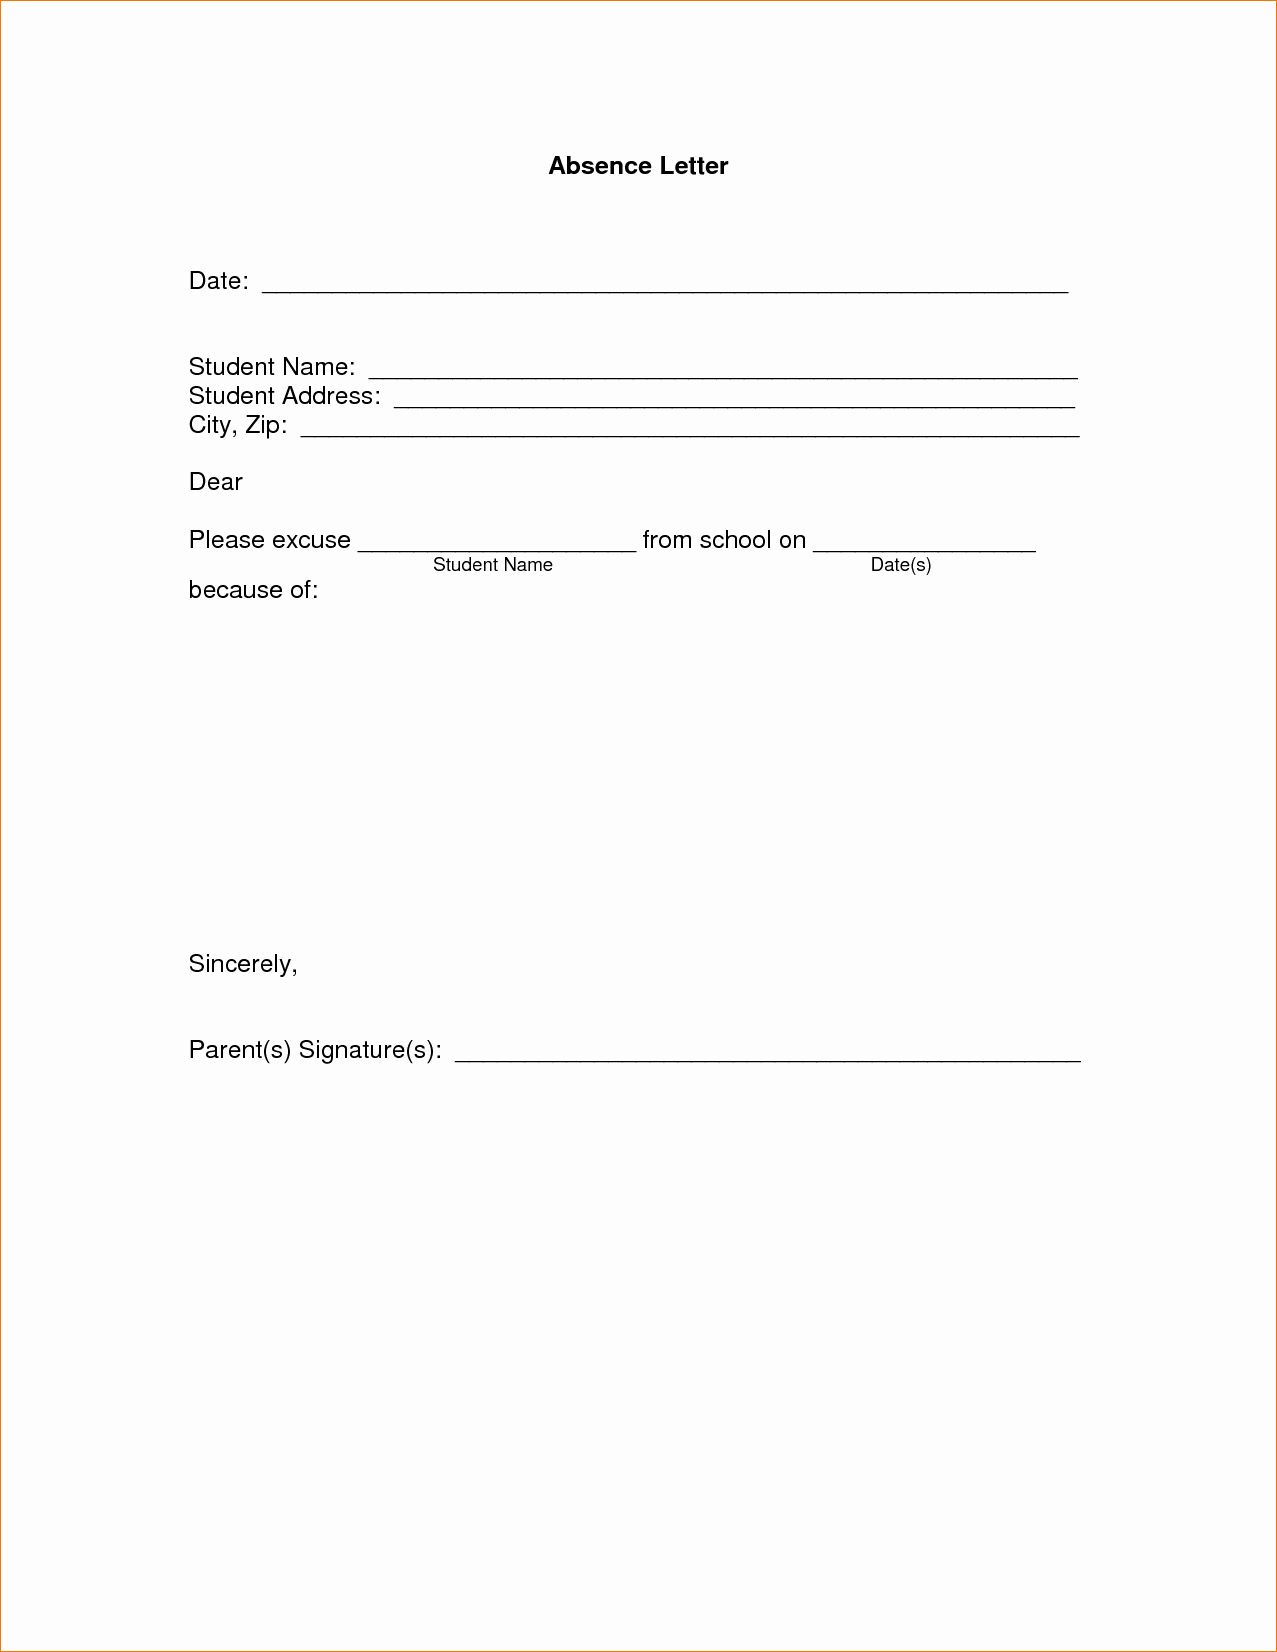 Absence From School Letter Sample Beautiful 11 Absence Excuse Letteragenda Template Sample